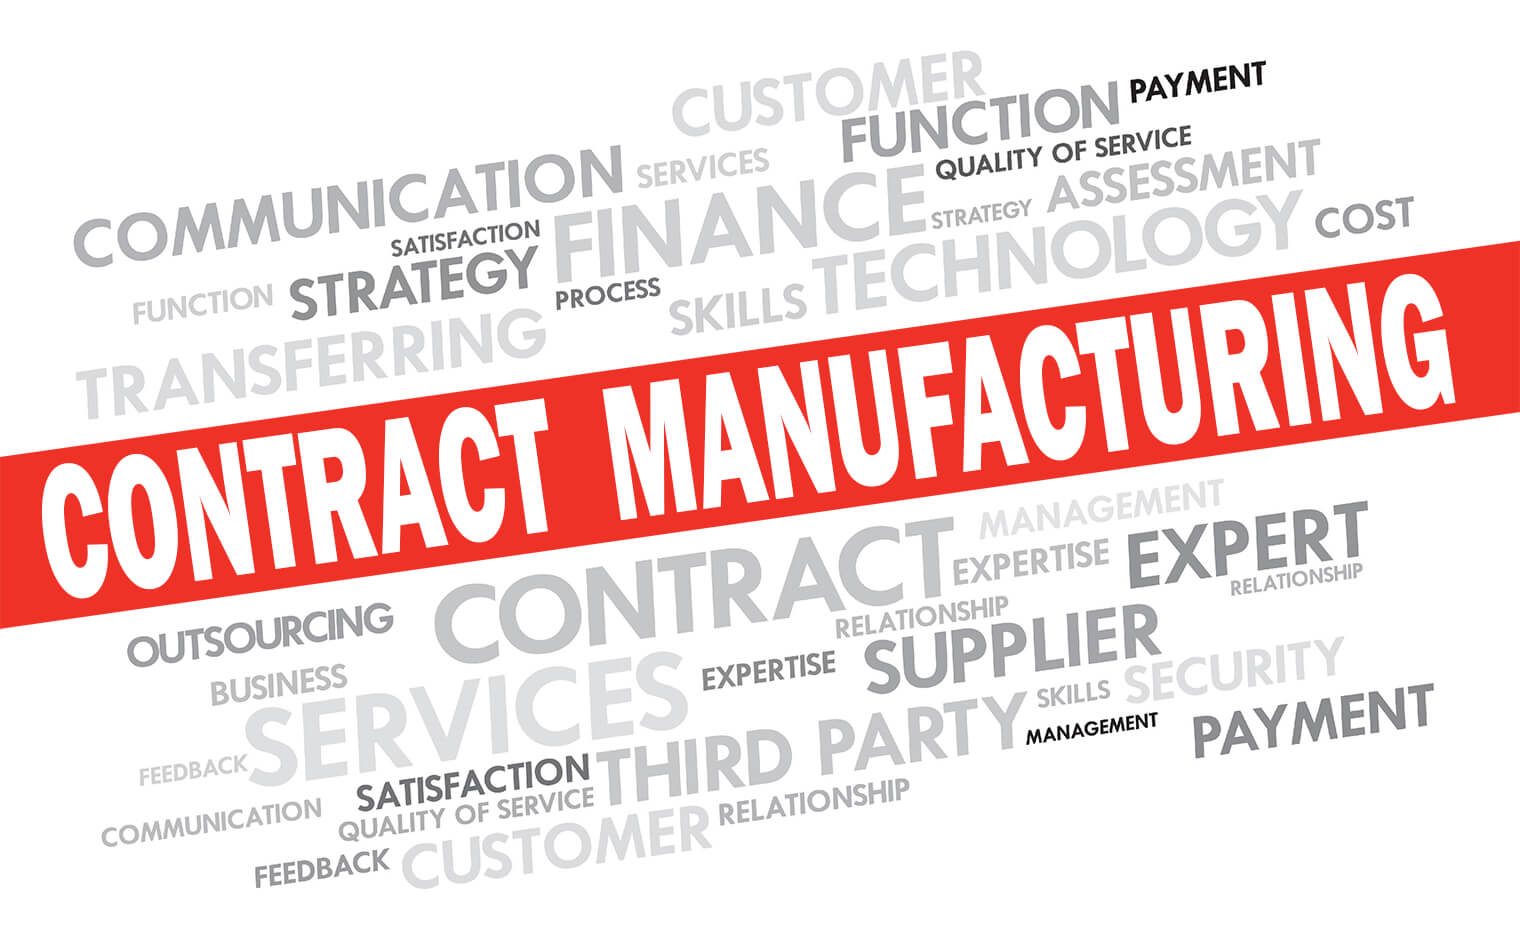 Word Cloud representing Contract Manufacturing